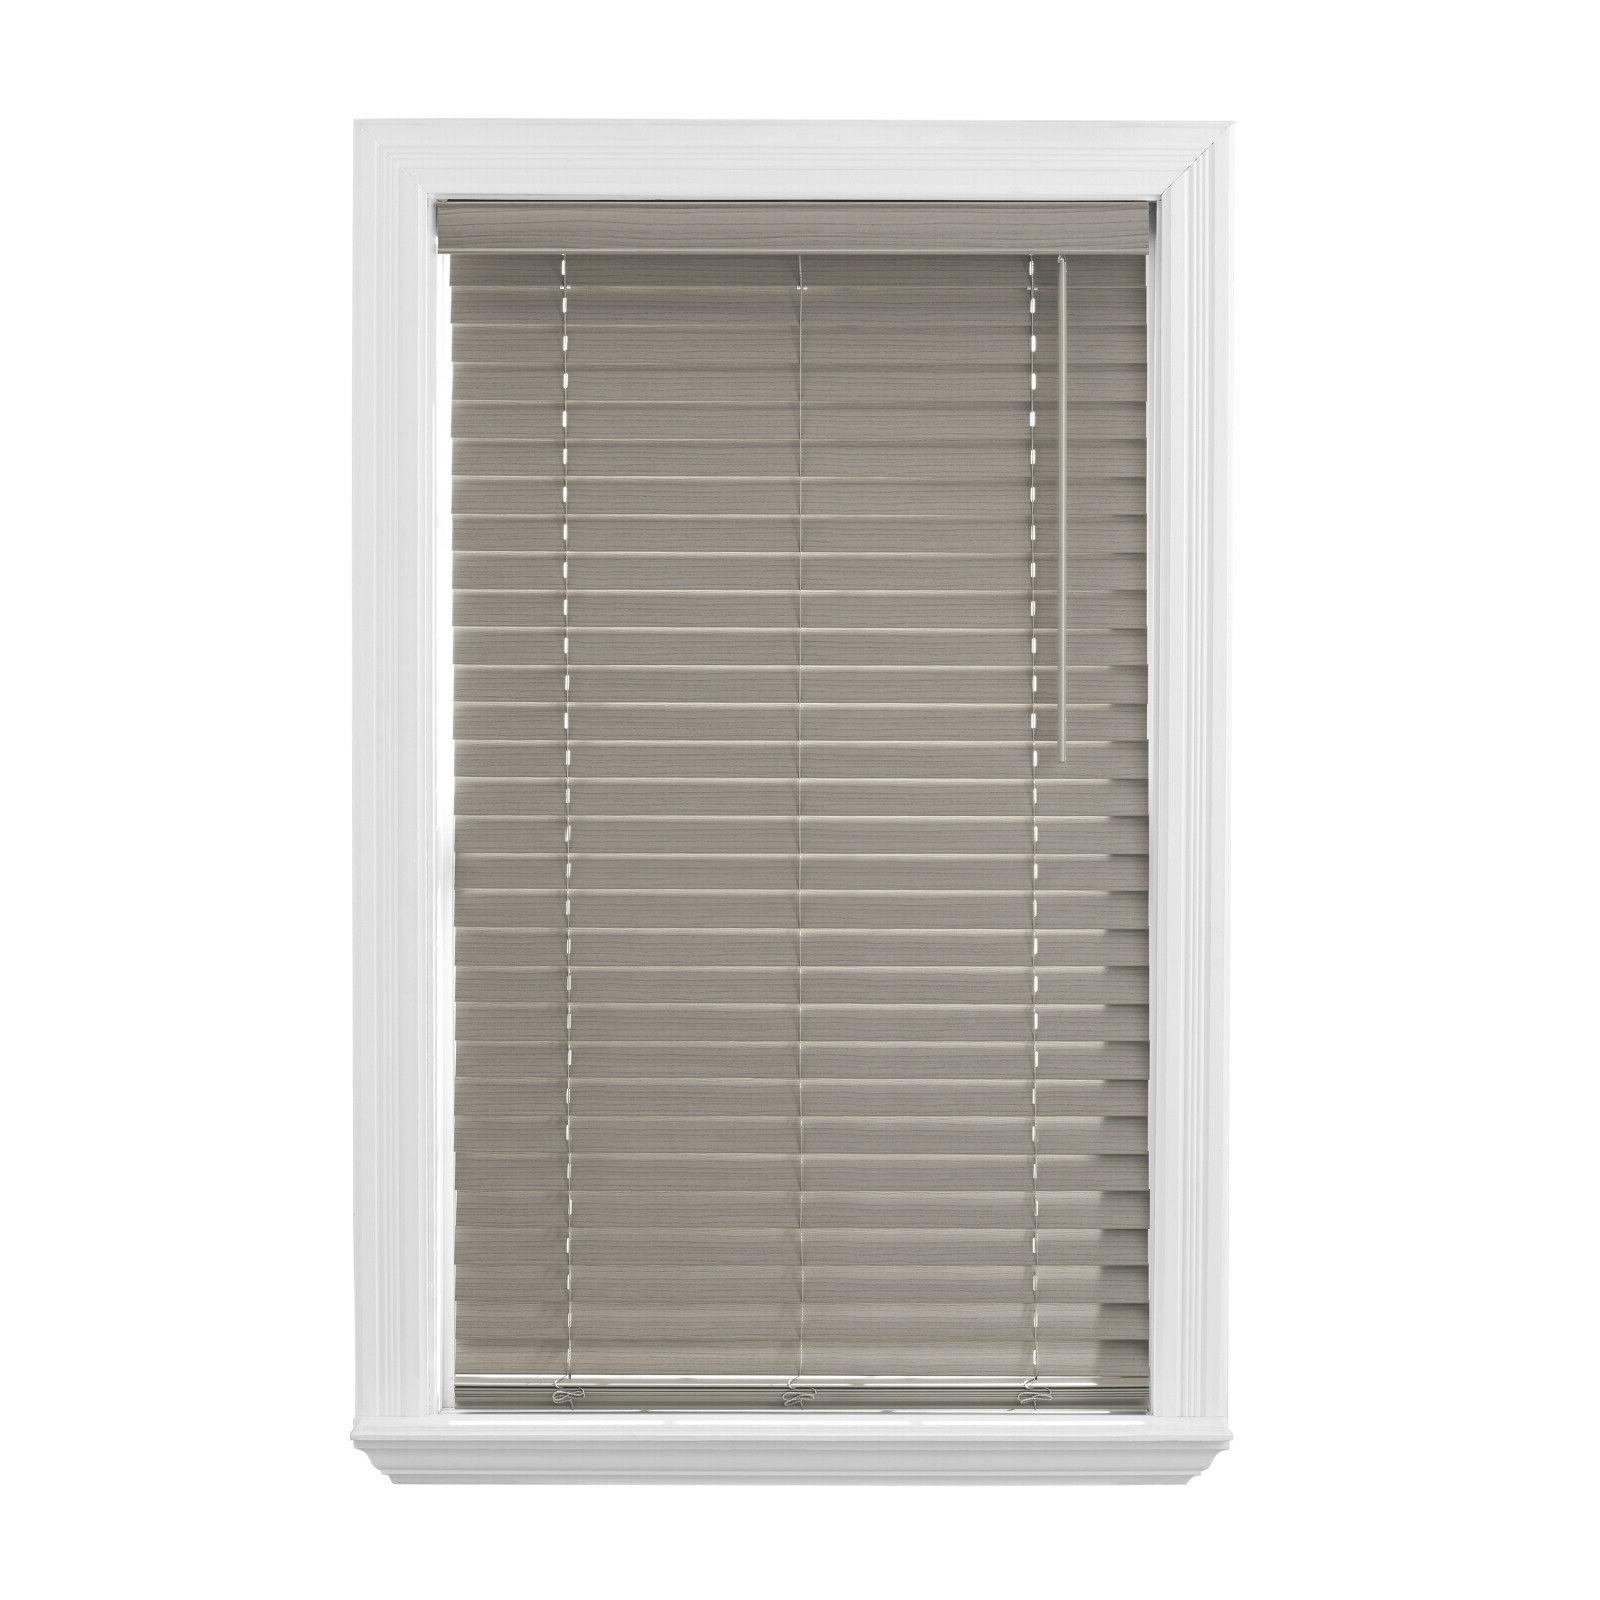 2 inch gray faux wood windows blinds